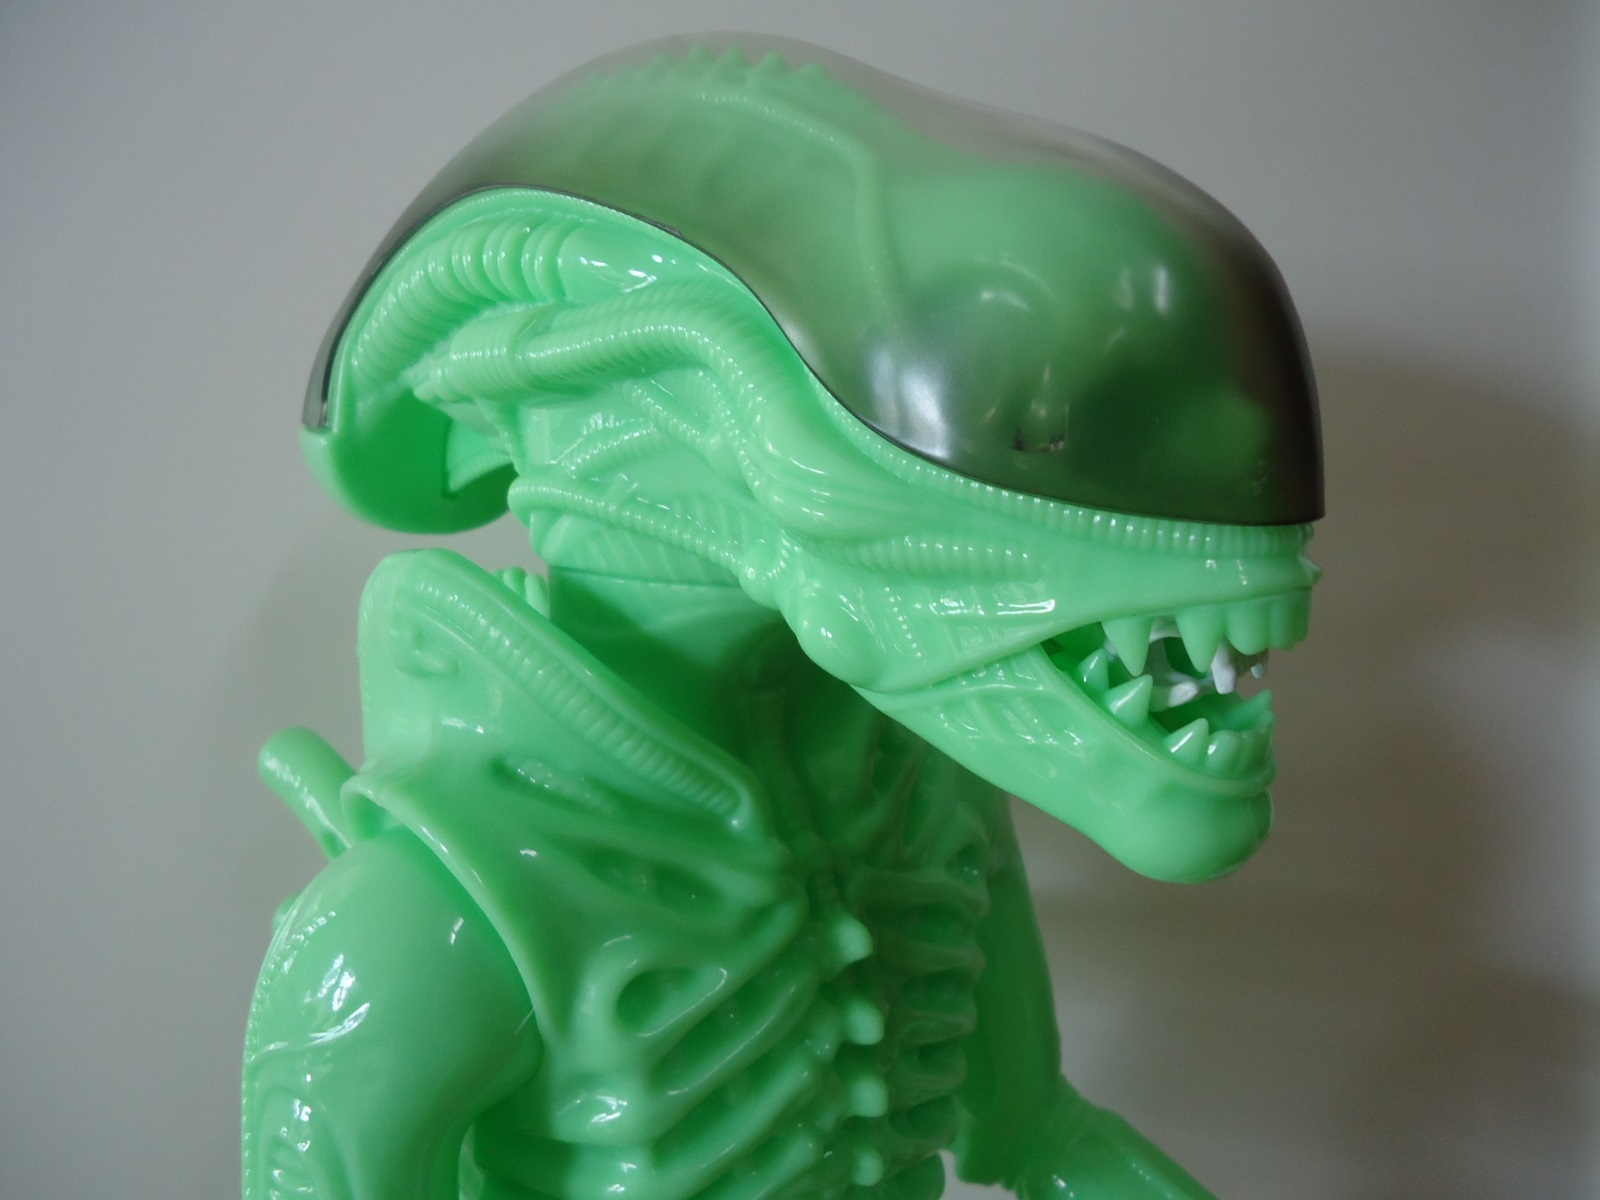 24 inch tall Gentle Giant glow in the dark ALIEN action figure close up of head.